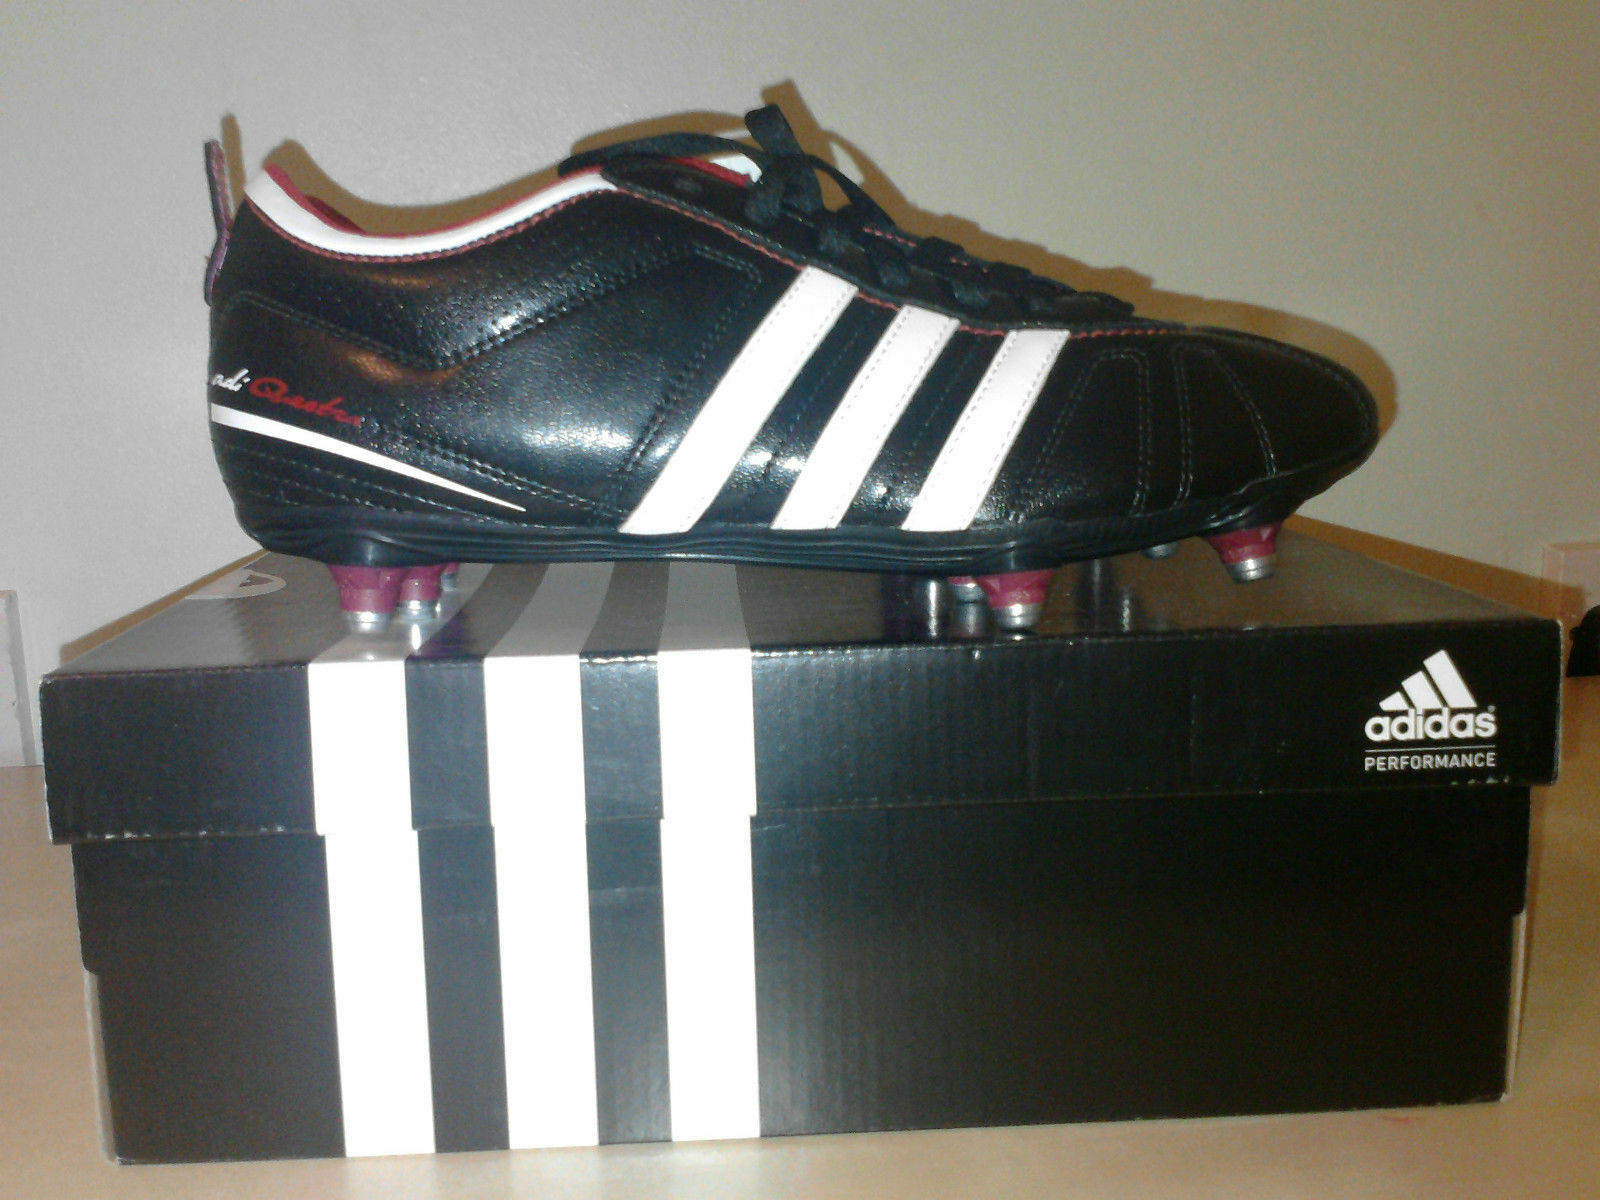 NEW ADIDAS QUESTRA SG SOFT GROUND FOOTBALL SHOES SIZE BLACK/WHITE/RED